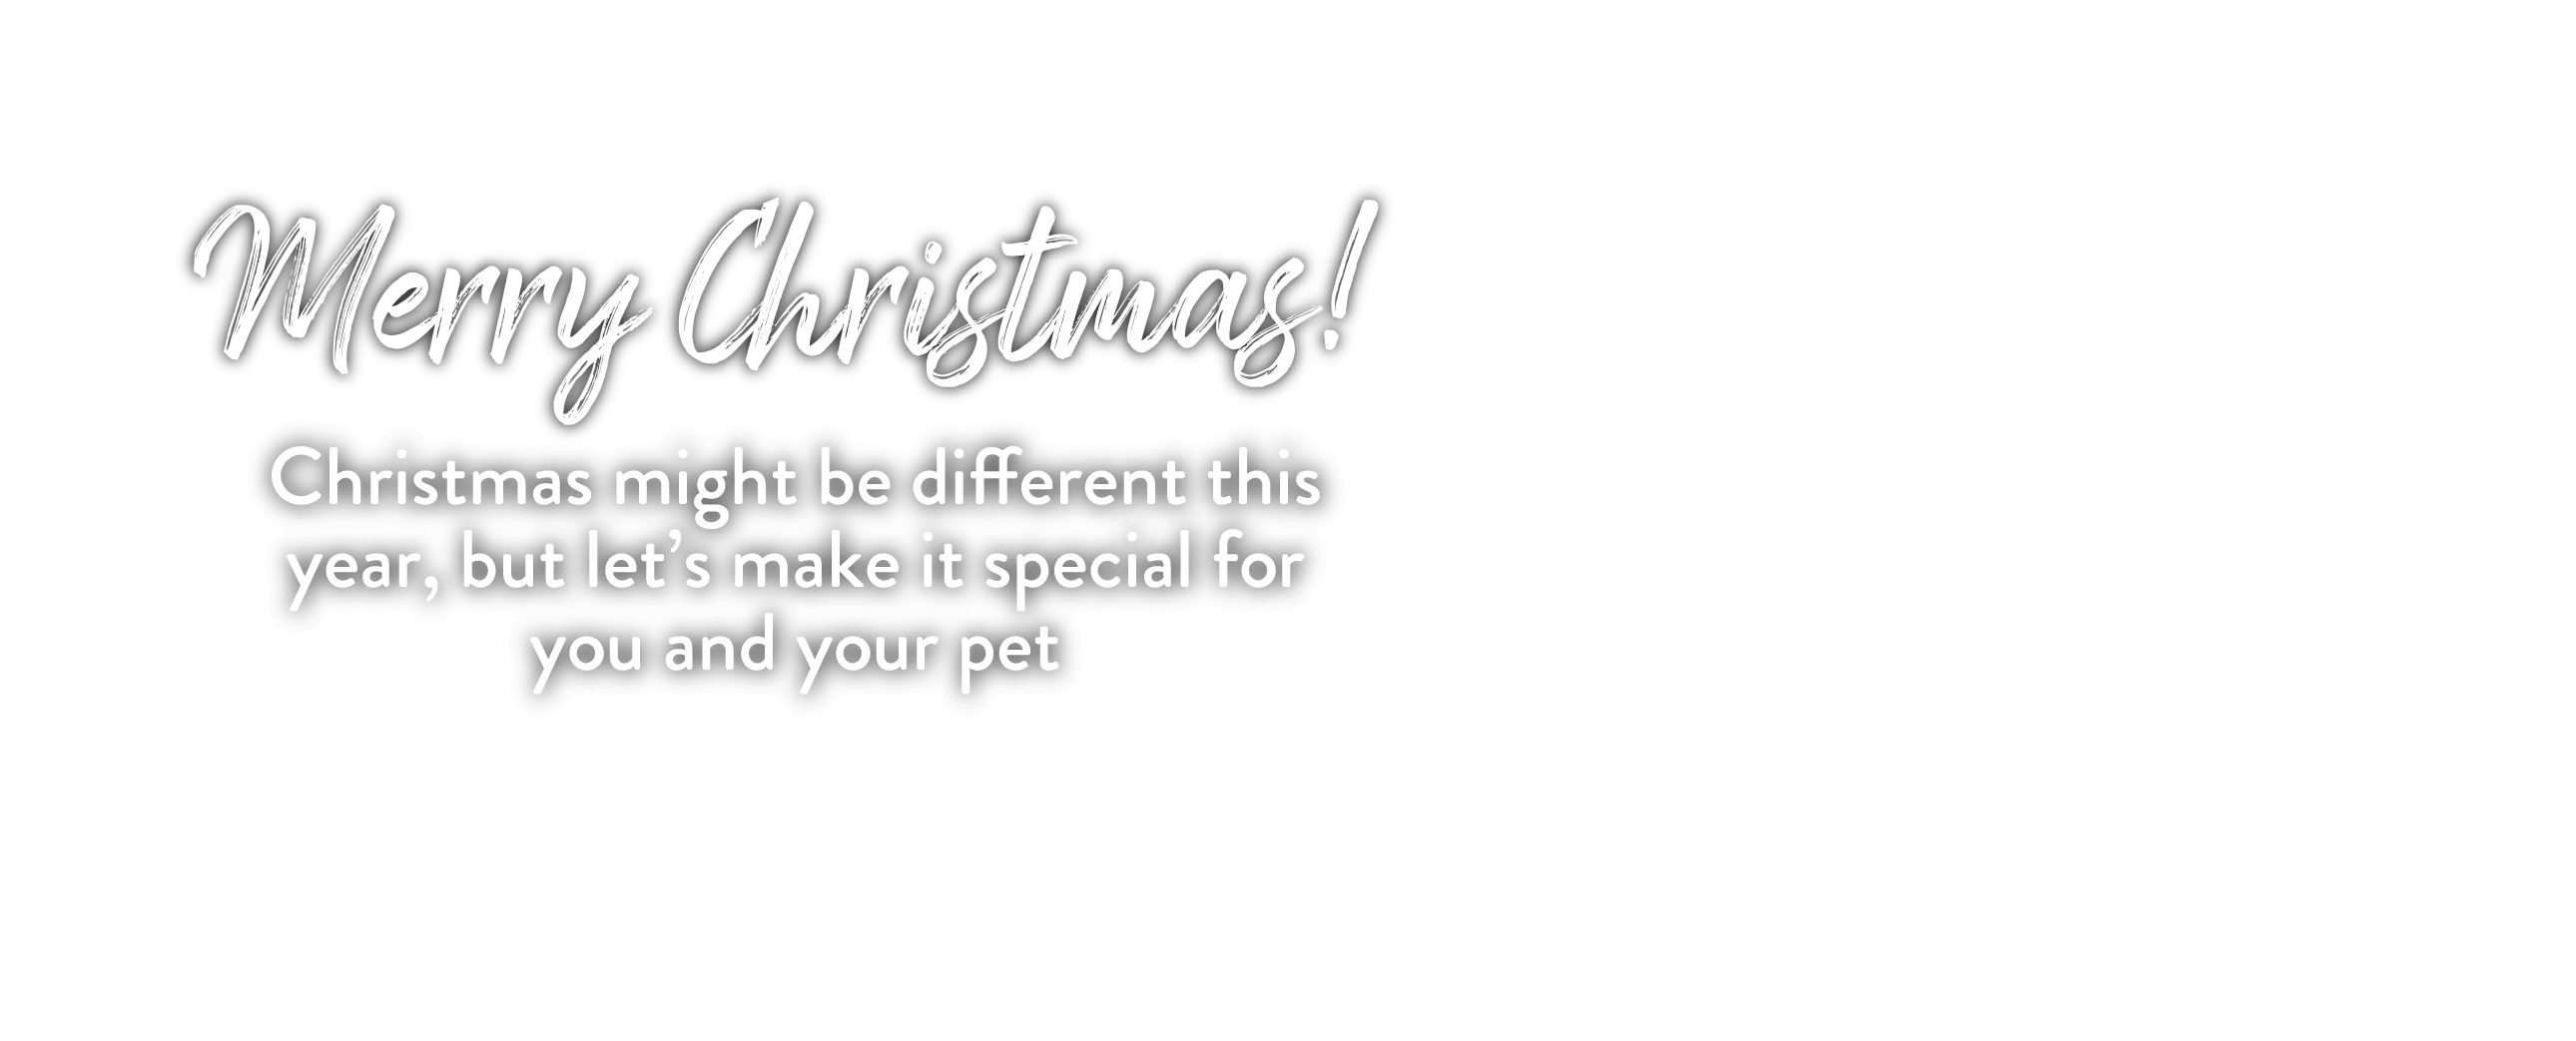 Merry Christmas! Christmas might be different this year, but let's make it special for you and your pet